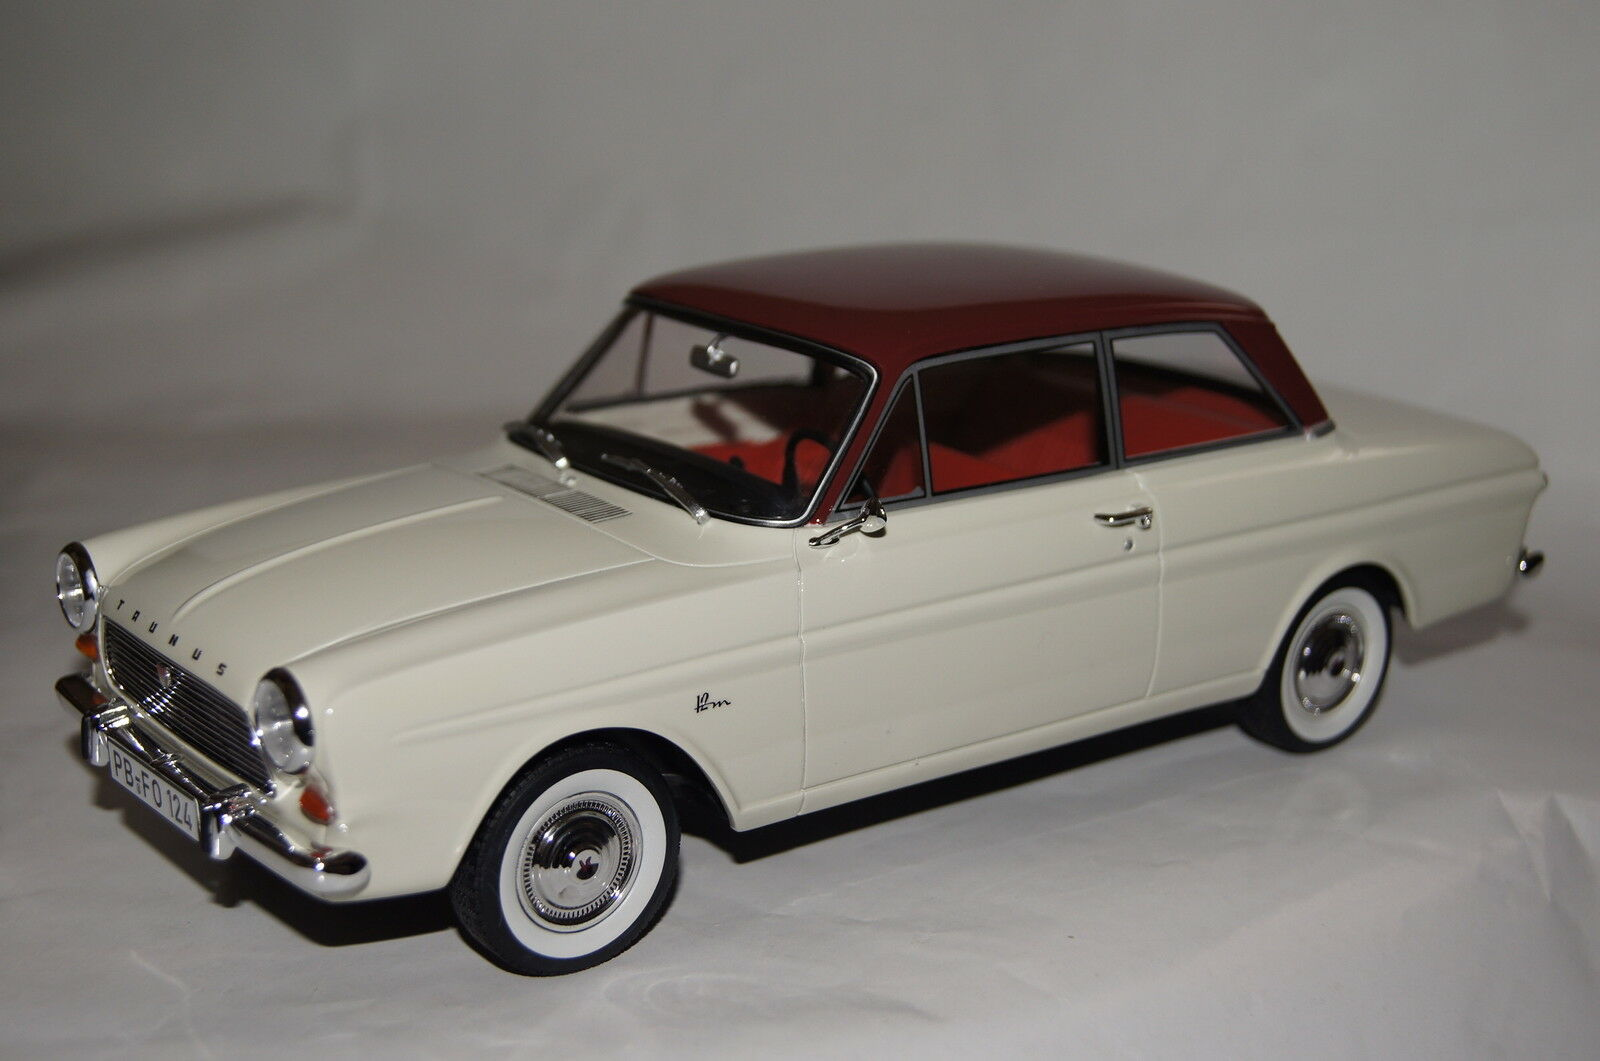 FORD TAUNUS 12m p4 BIANCO-ROSSO resin 1:18 Bos NUOVO & OVP 193251